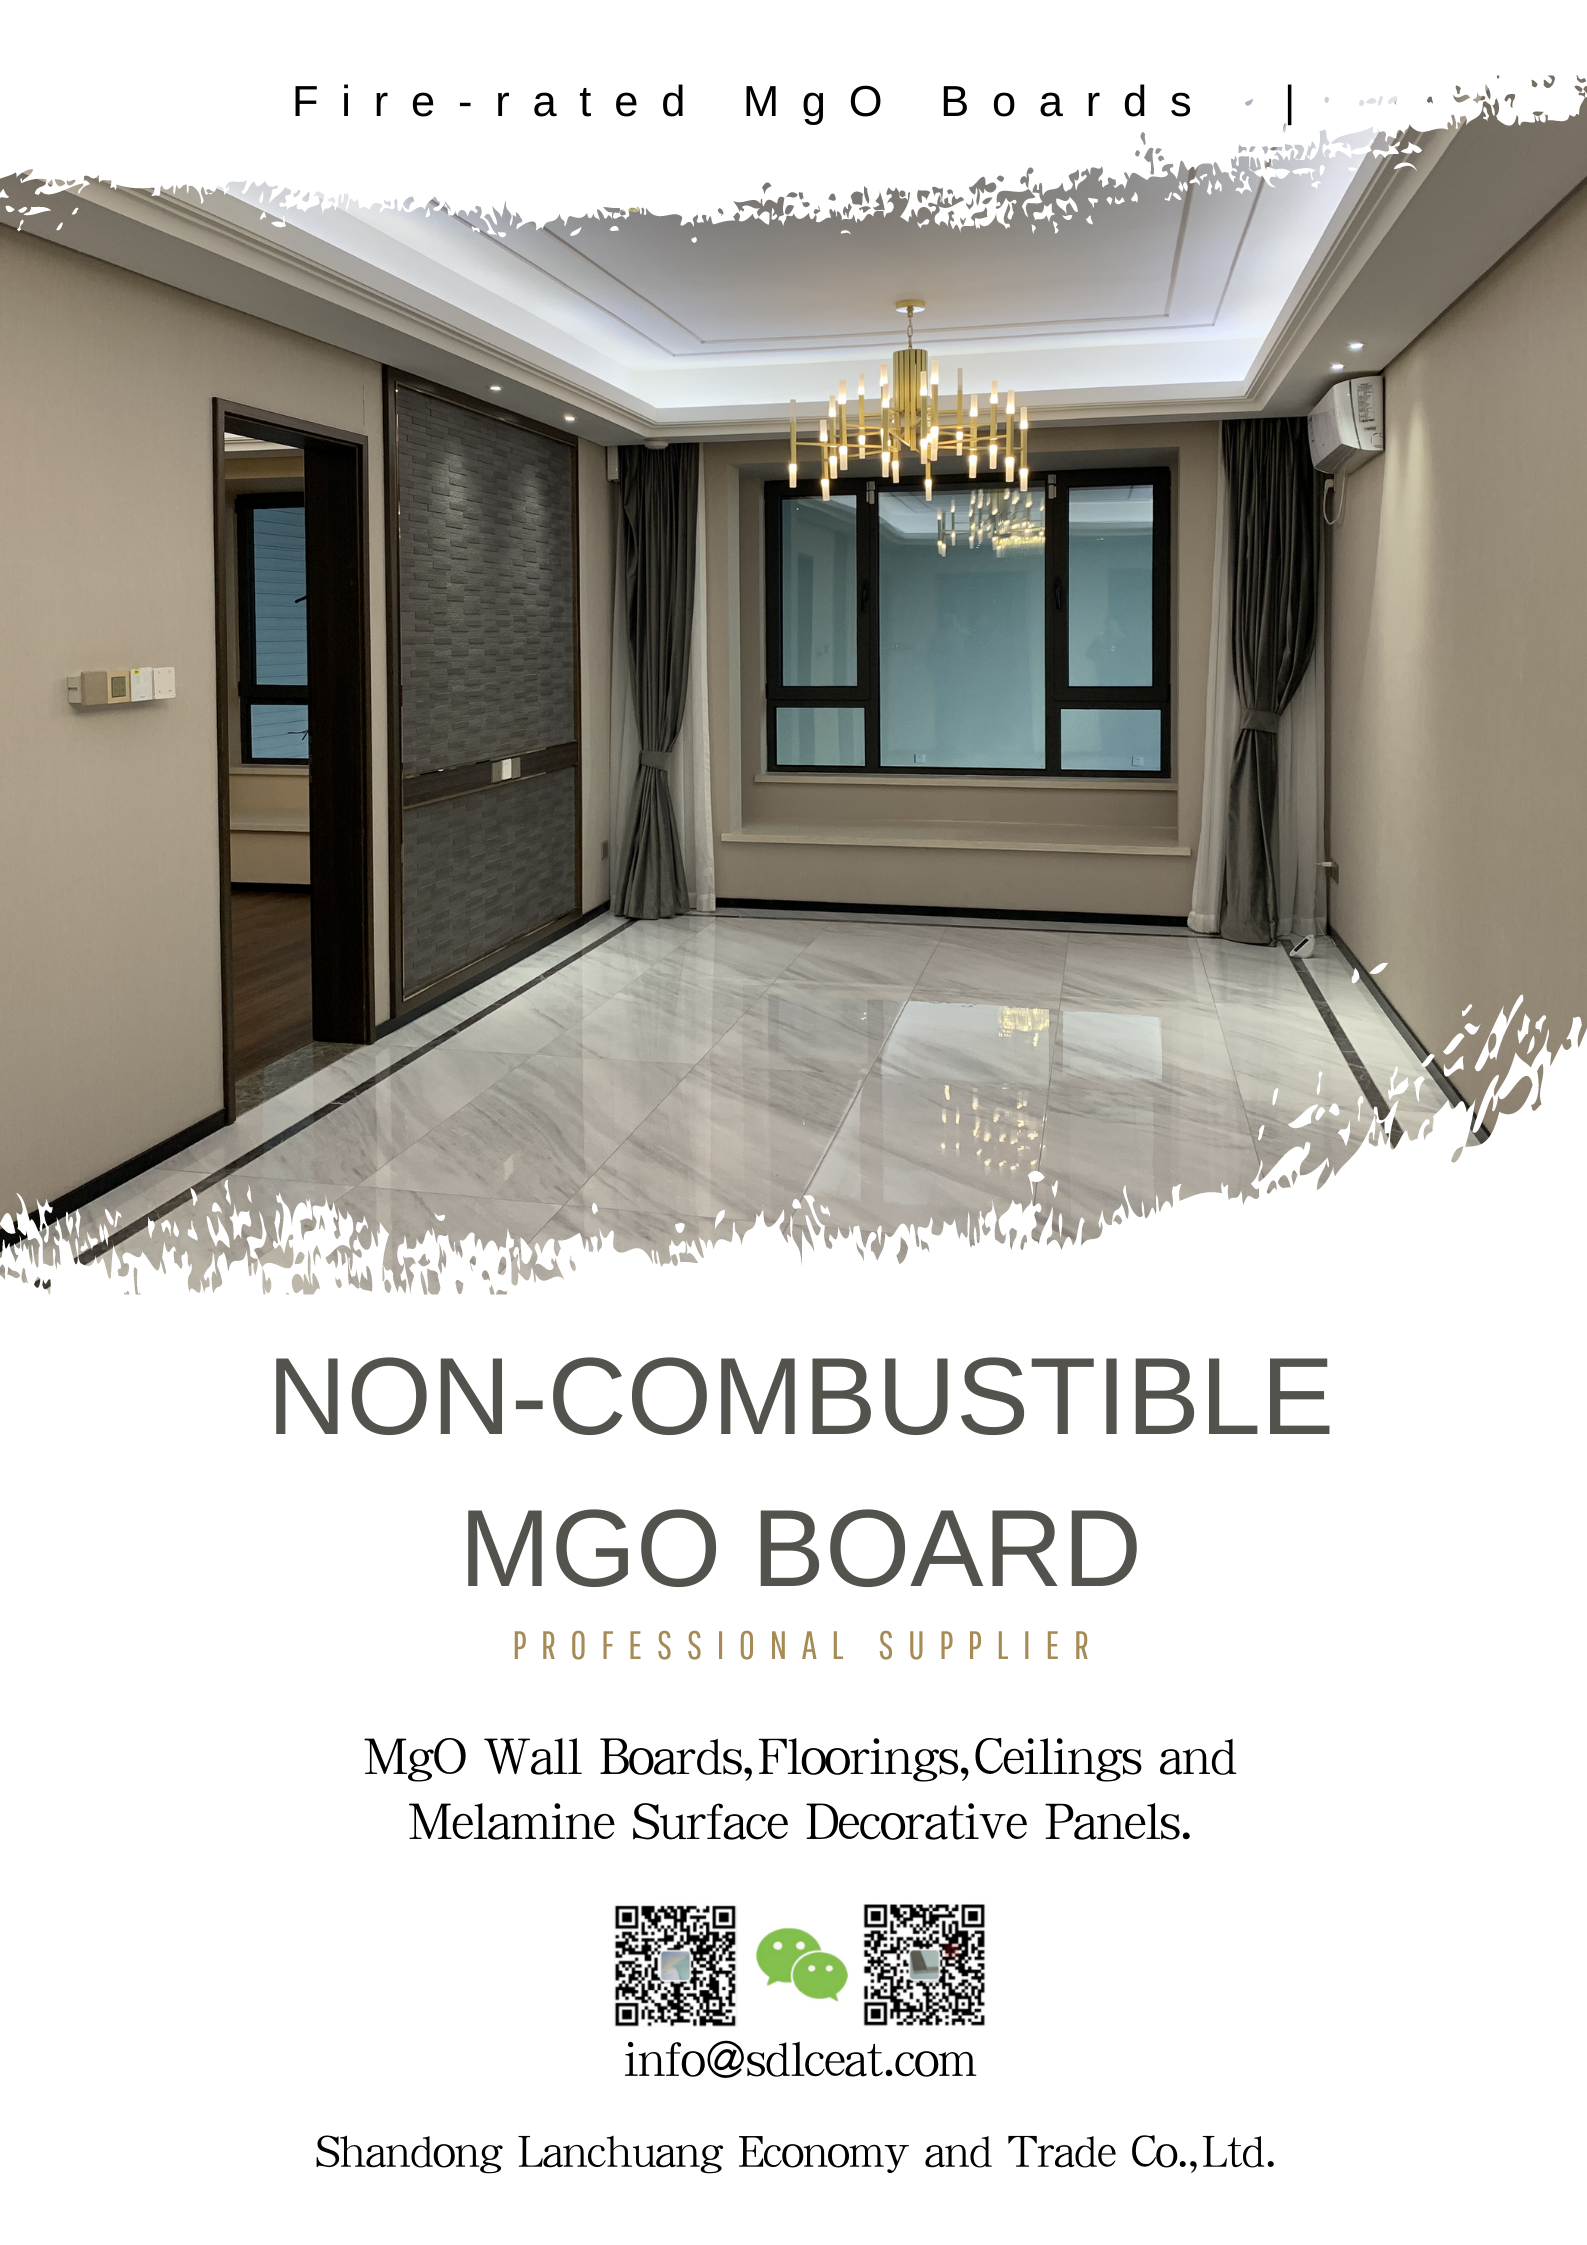 3mm non-combustible decorative mgo panels without kraft paper